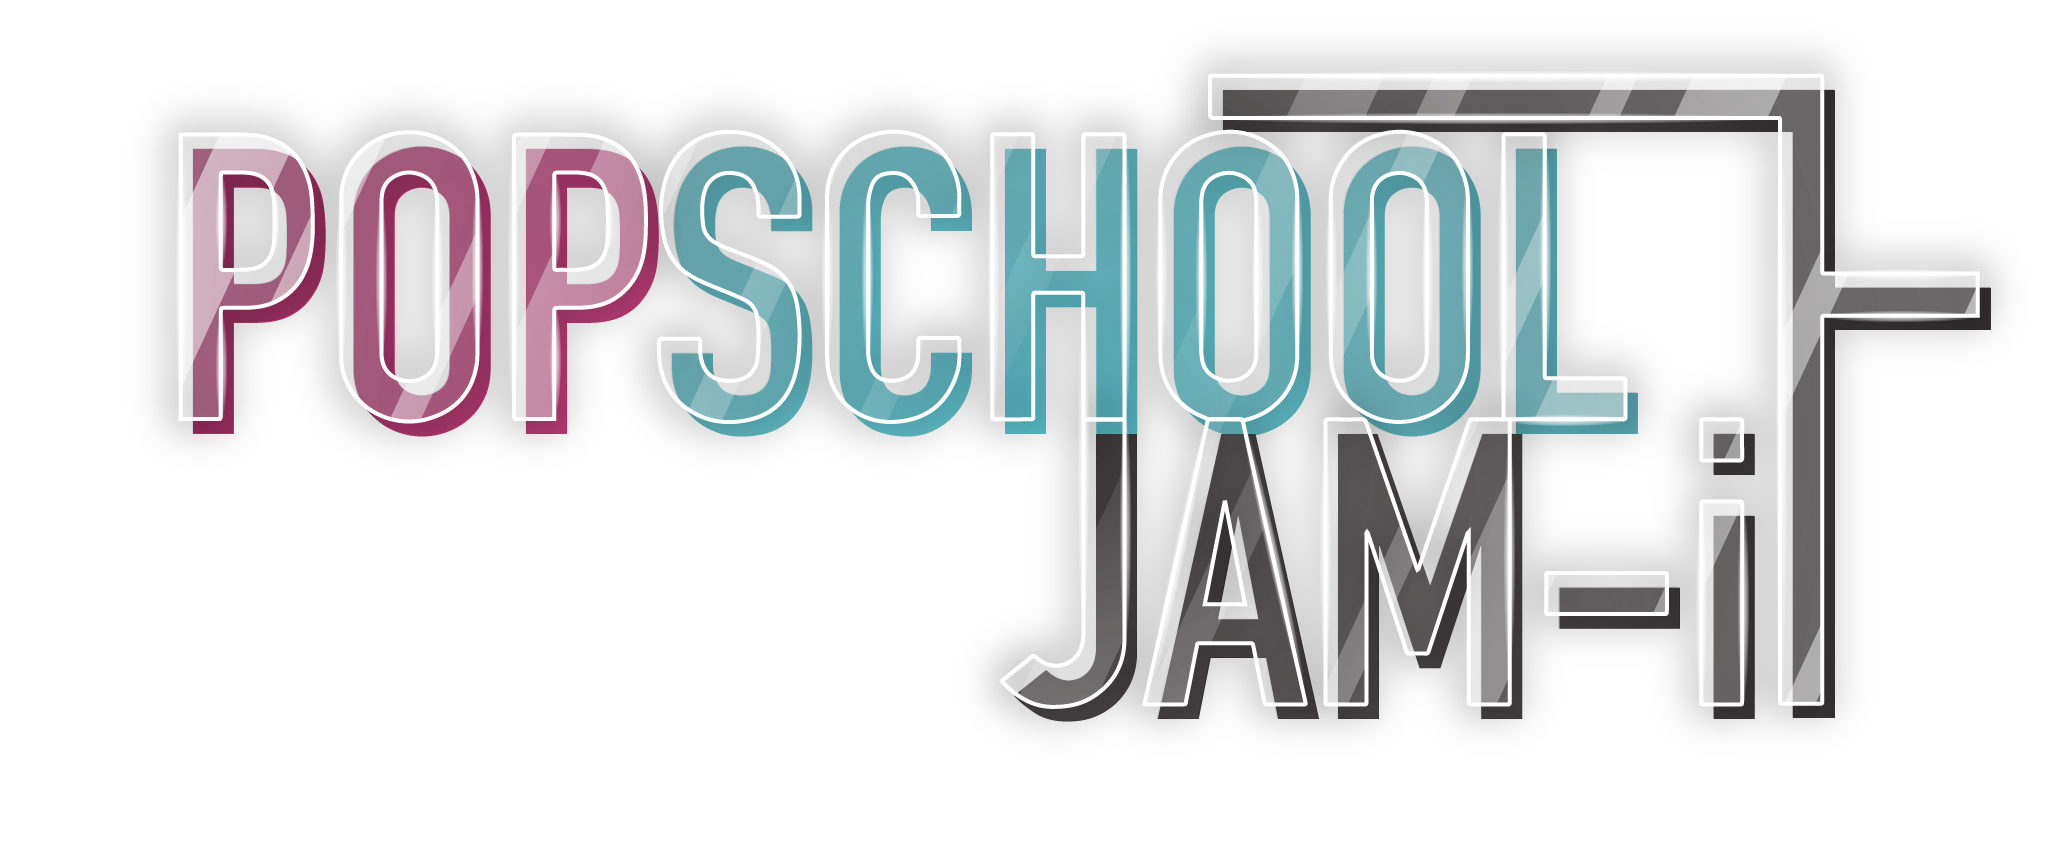 Popschool Jam-it!